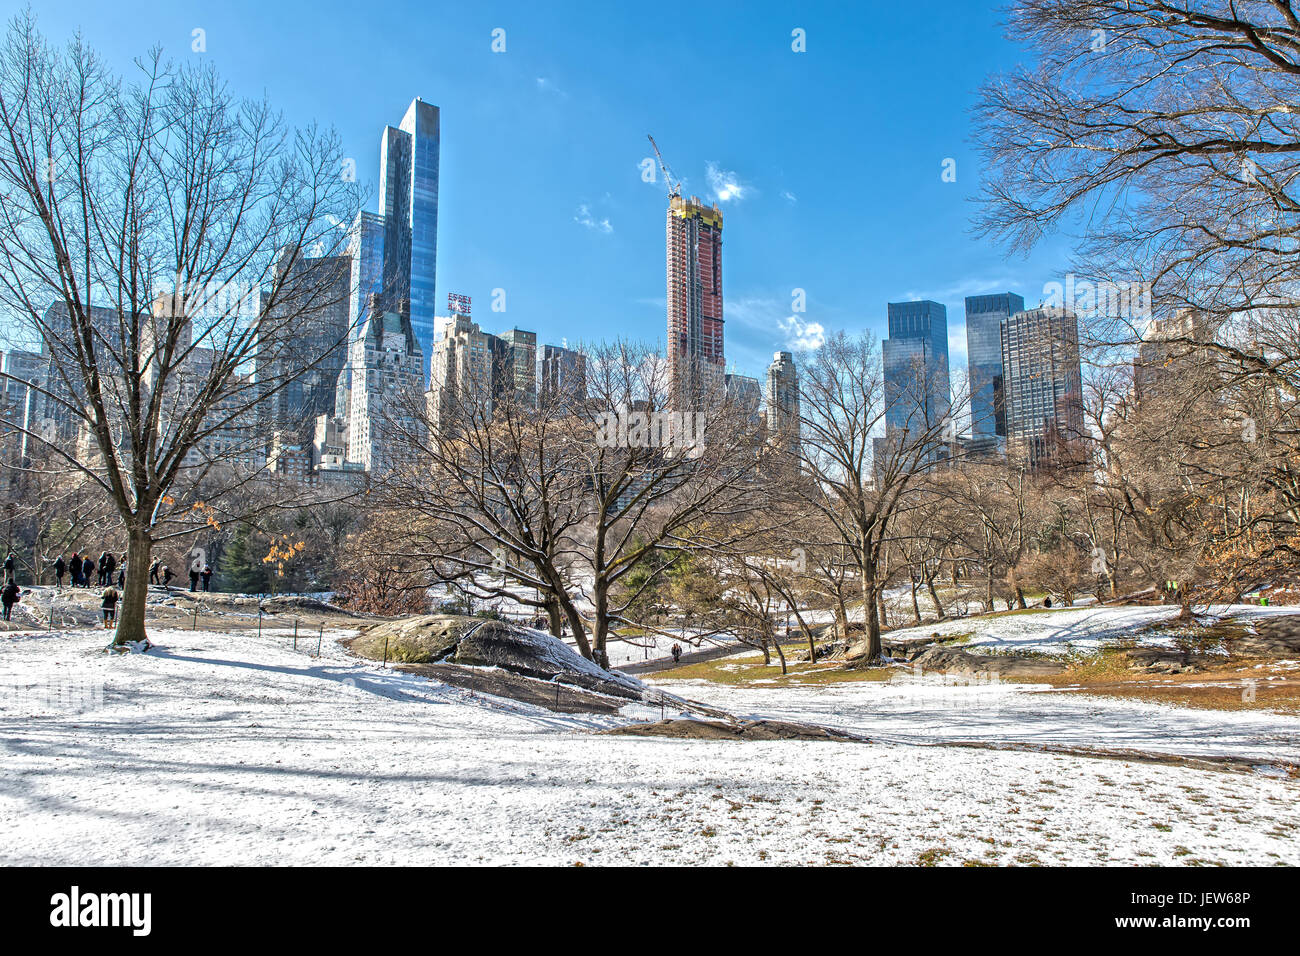 Central Park and Skyline in Winter with Ice Rink and Snow - Stock Image